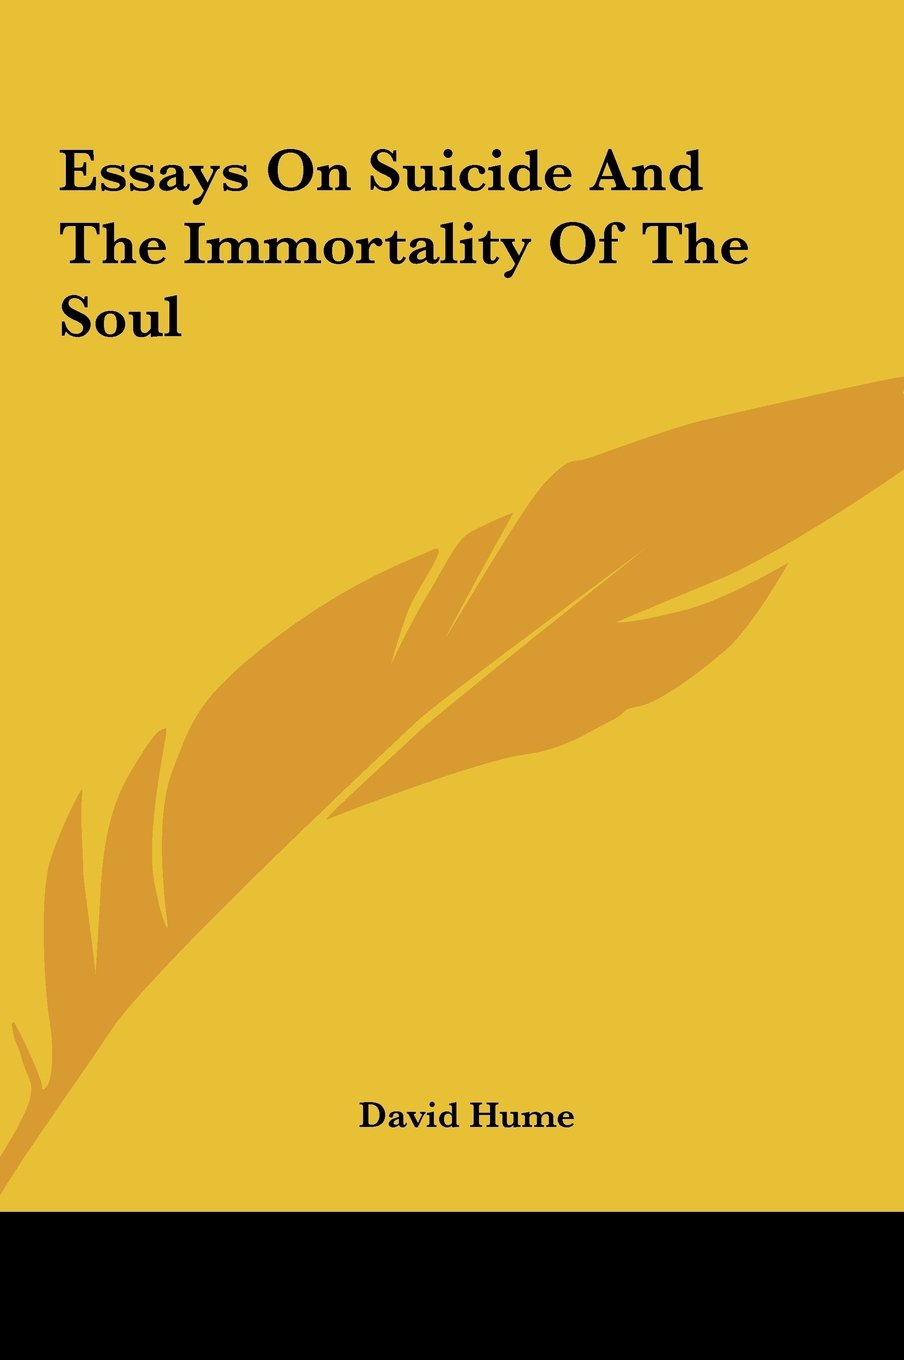 the immortality of the soul and the resurrection of the body essay This belief in resurrection of the body stands in sharp contrast to the greek view of human life, vestiges of which can also be found in the new testament, that we human beings are made up of body and soul, and at death the two part company.